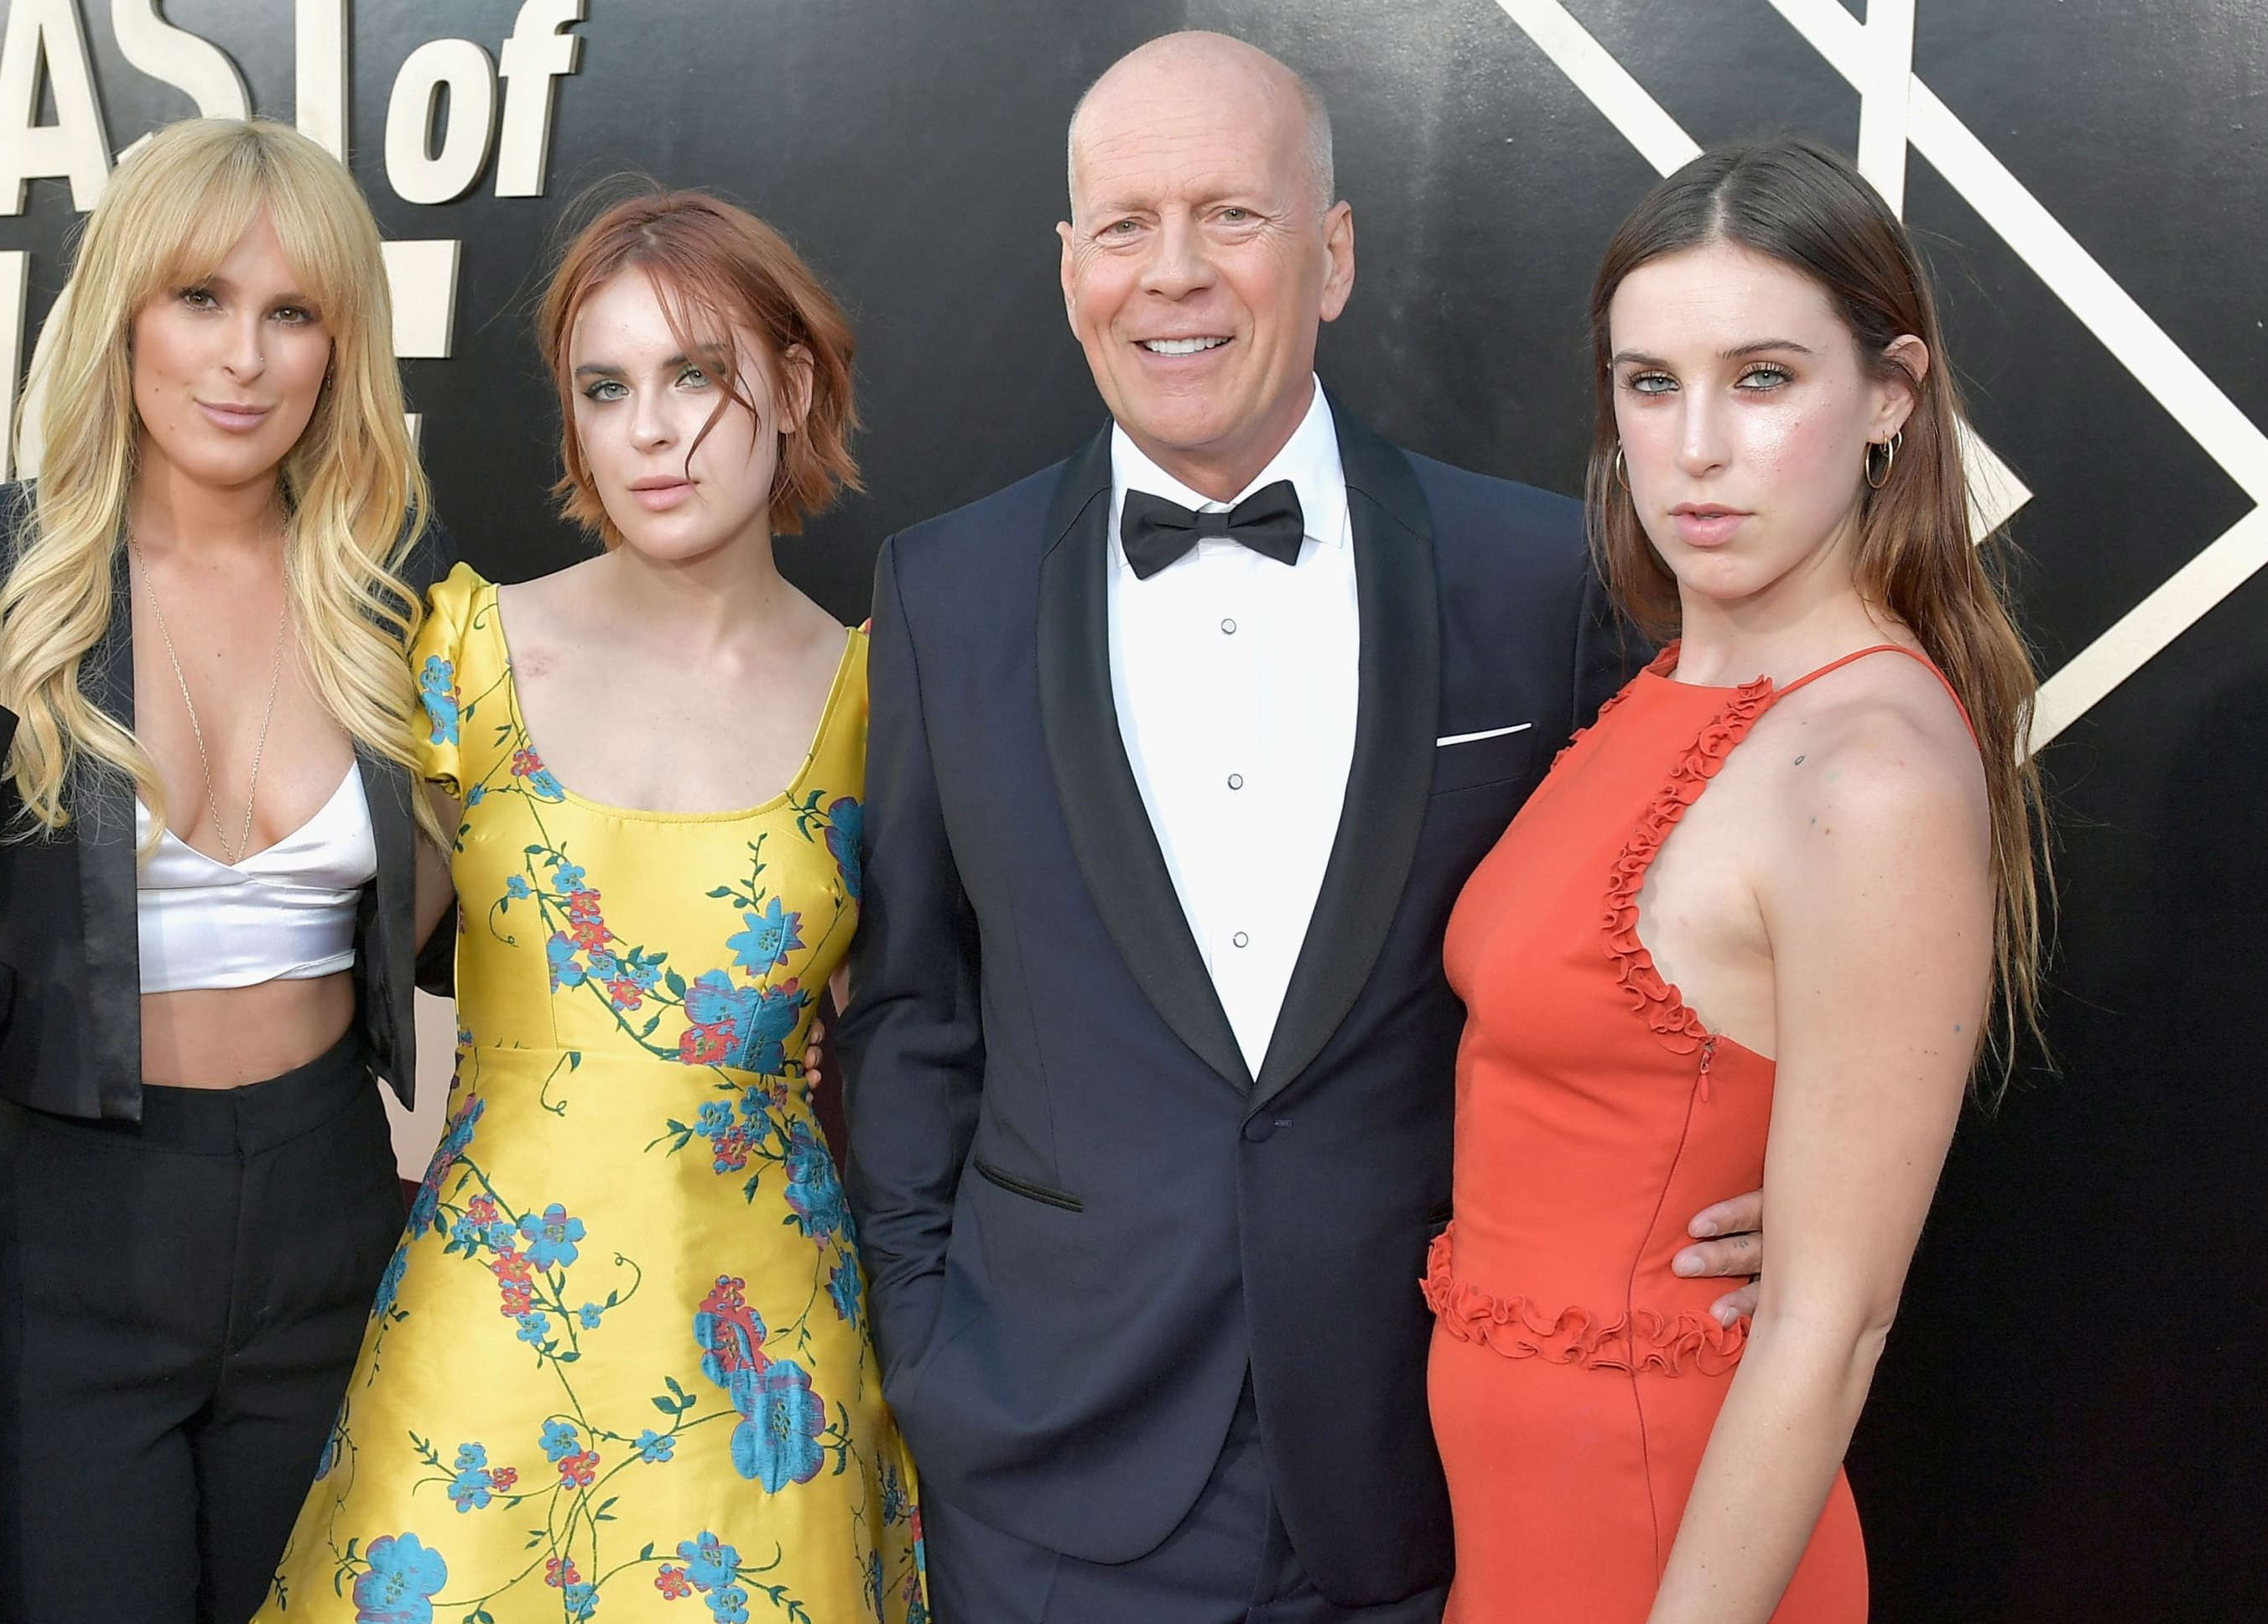 Slide 5 of 18: LOS ANGELES, CA - JULY 14:  (L-R) Emma Heming, Rumer Willis, Tallulah Willis, Bruce Willis and Scout Willis attend the Comedy Central Roast of Bruce Willis at Hollywood Palladium on July 14, 2018 in Los Angeles, California.  (Photo by Neilson Barnard/Getty Images For Comedy Central)